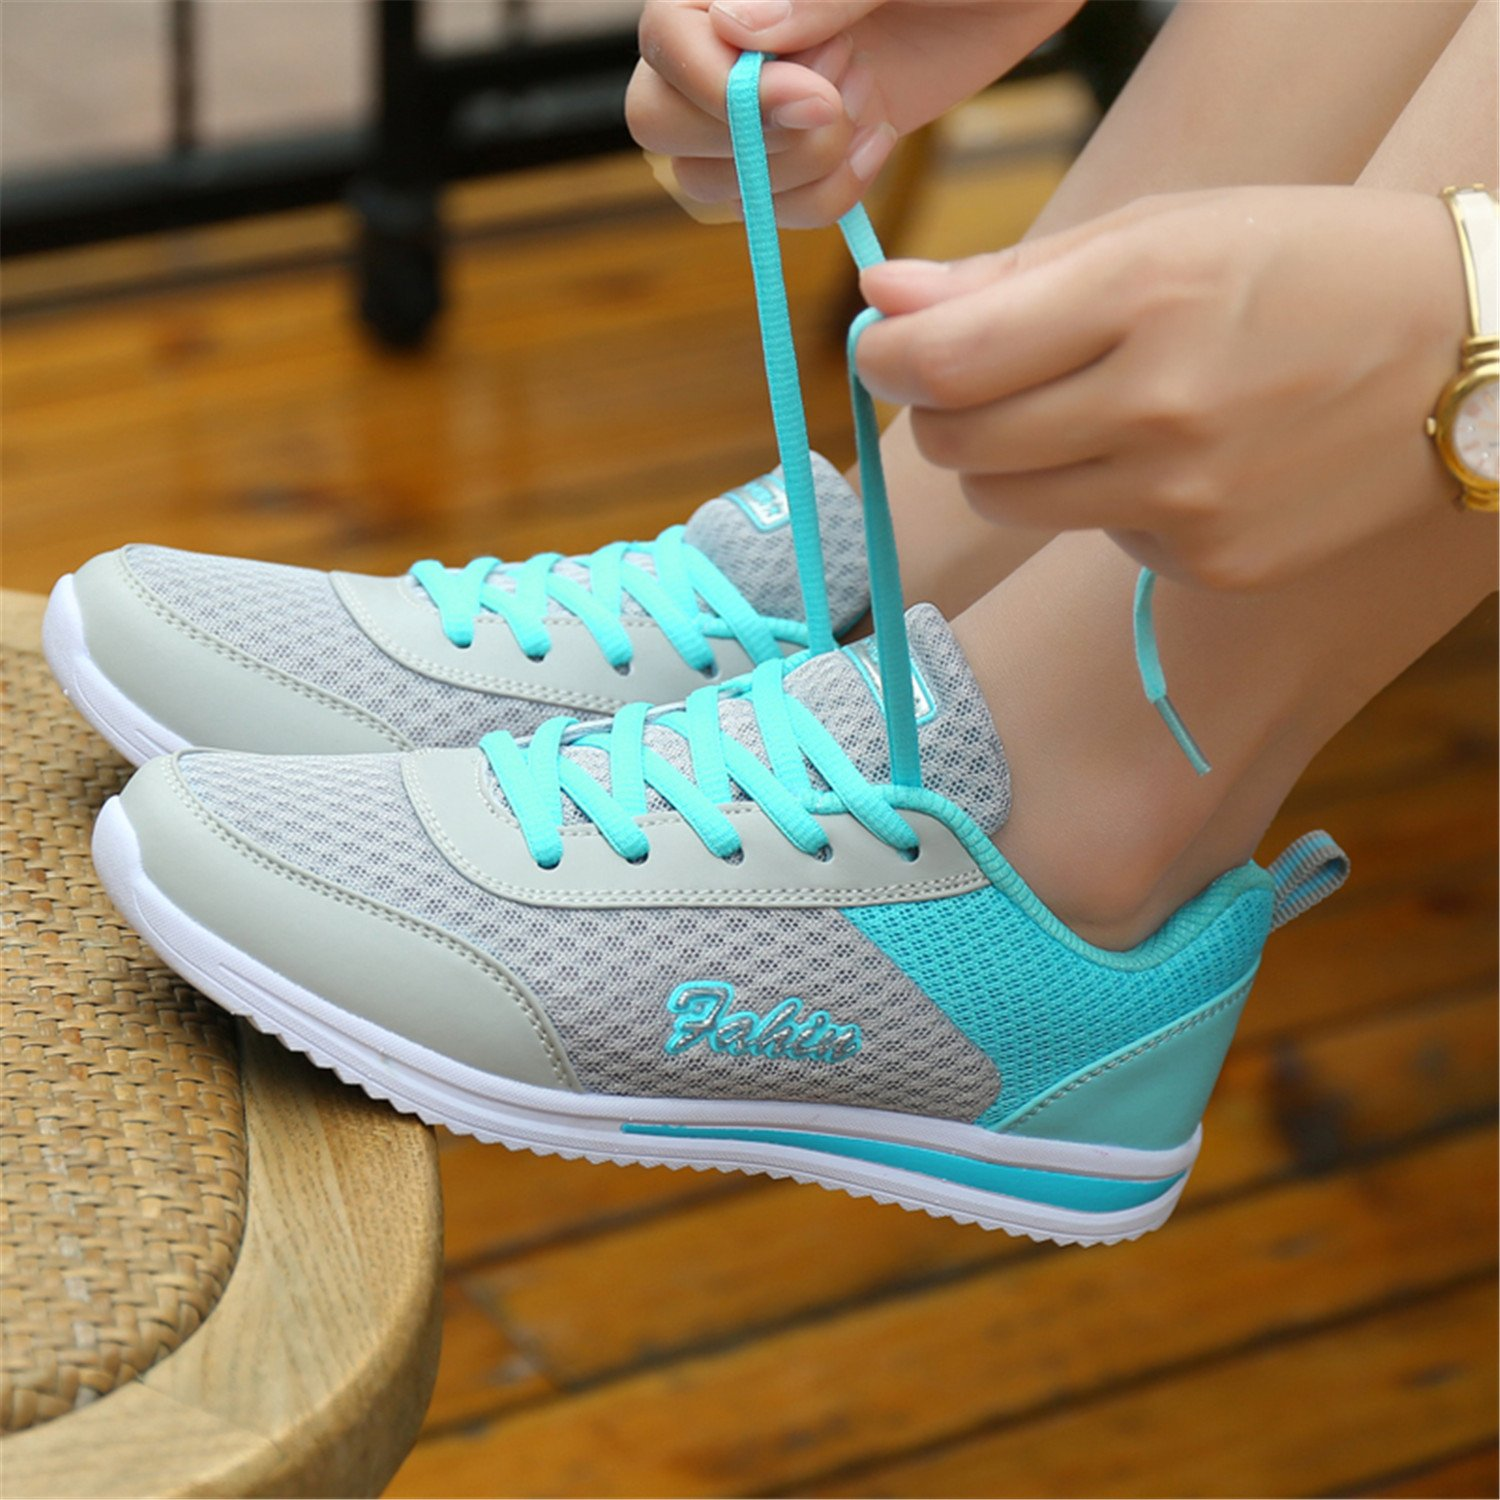 Amazon.com | sdferyujaw New New Summer Zapato Women Breathable Mesh Zapatillas Shoes for Women Network Soft Casual Shoes | Flats